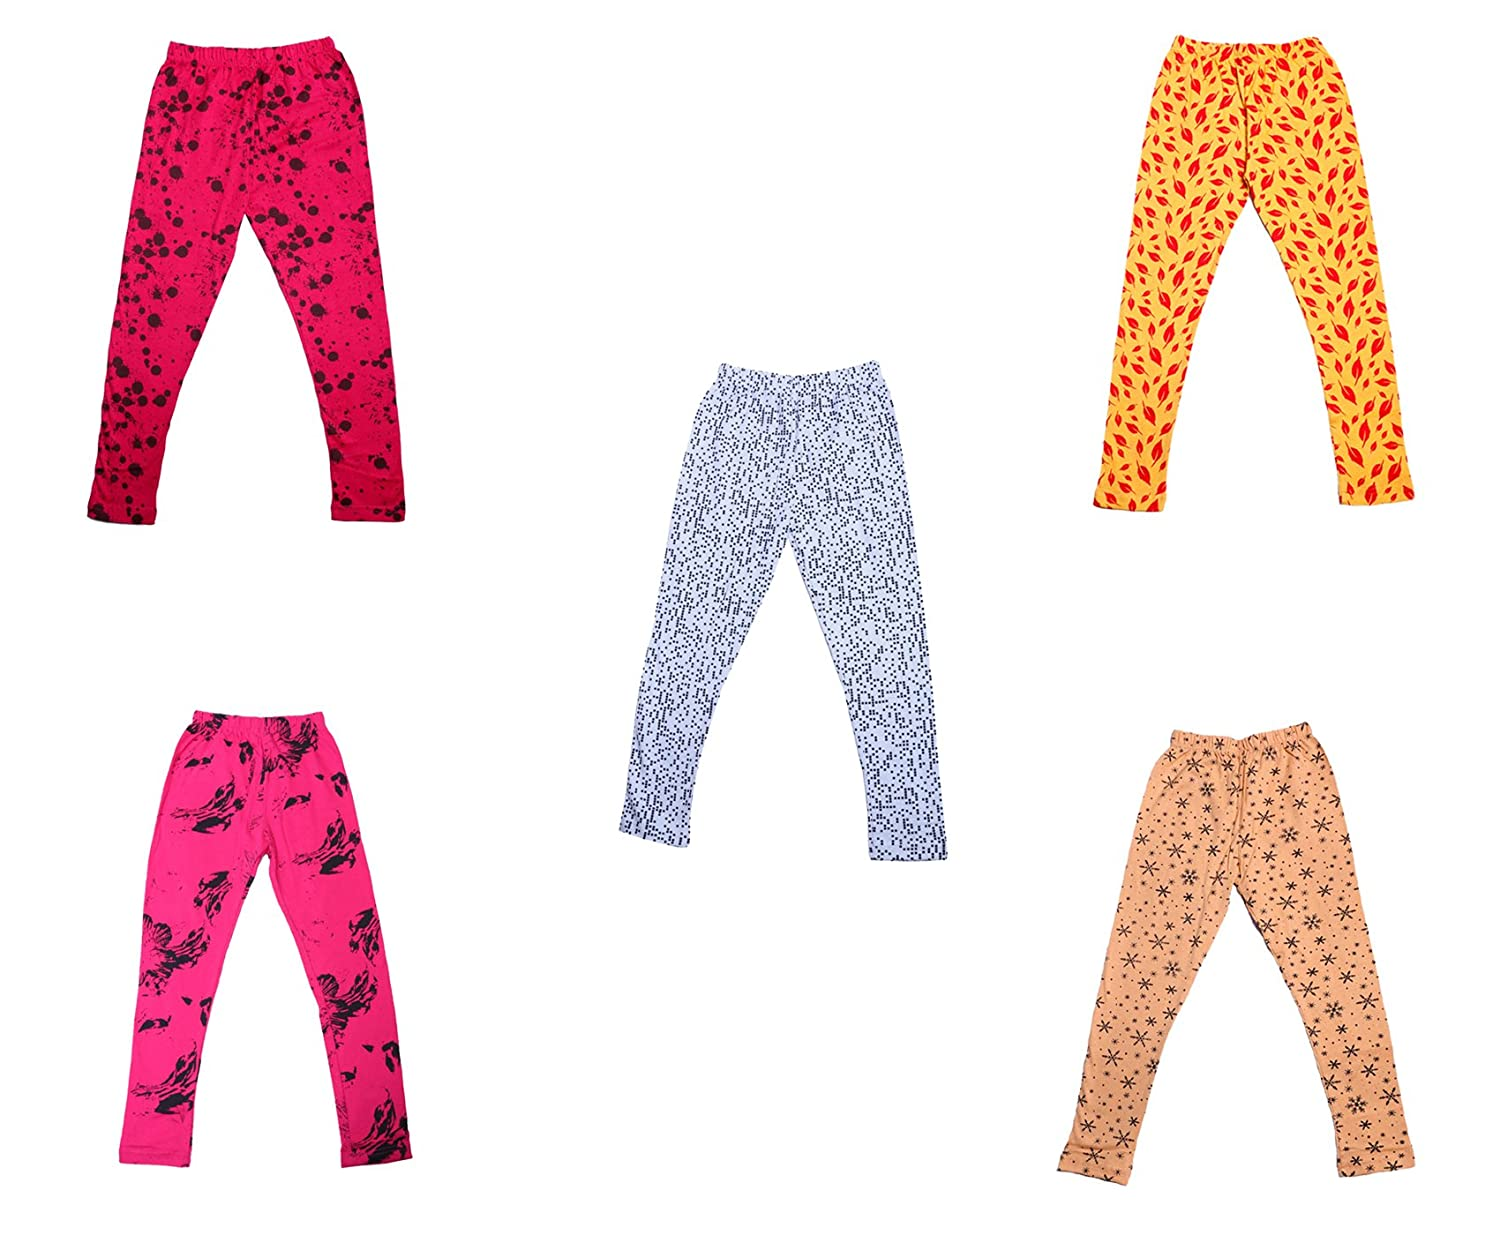 Indistar Girls Super Soft and Stylish Cotton Printed Churidar Legging Pants Pack of 5